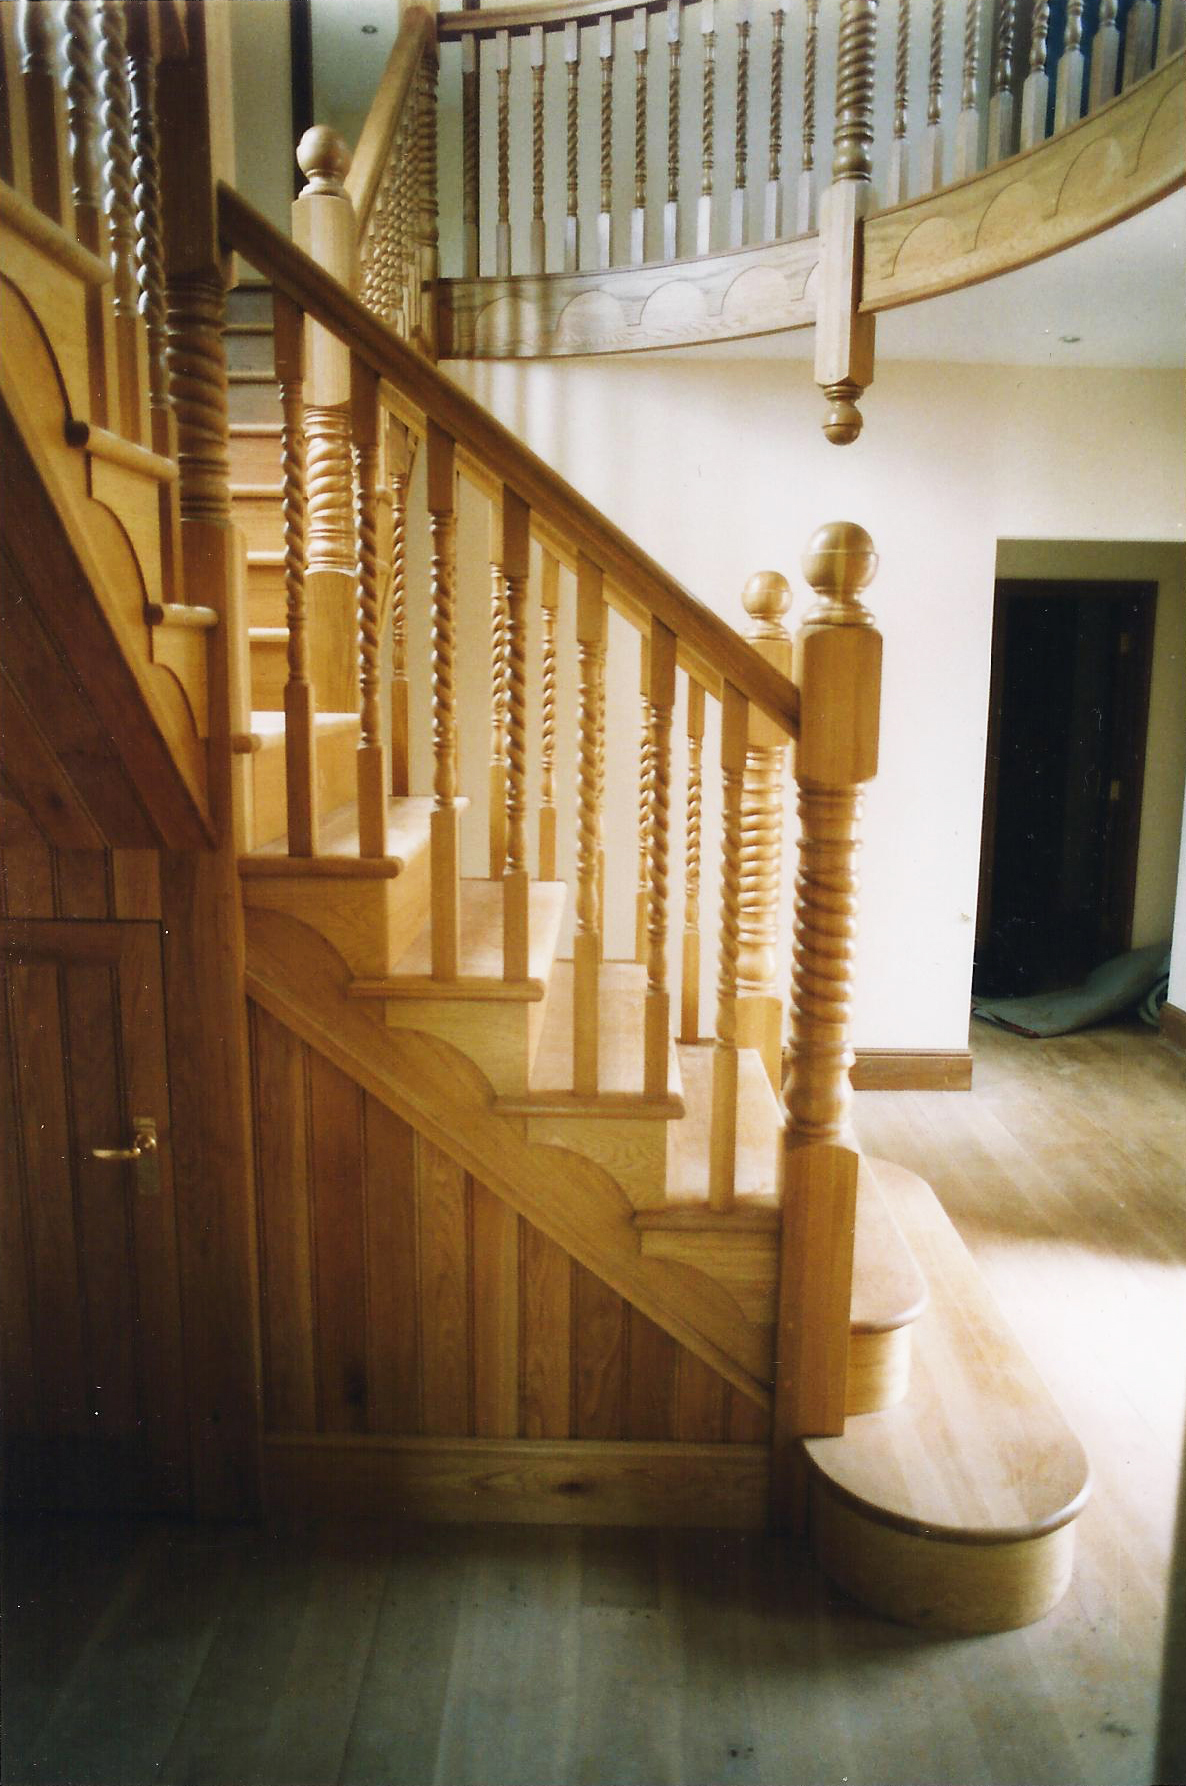 Staircase Image 2 - North End Farm - East Yorkshire Architects - Samuel Kendall Associates